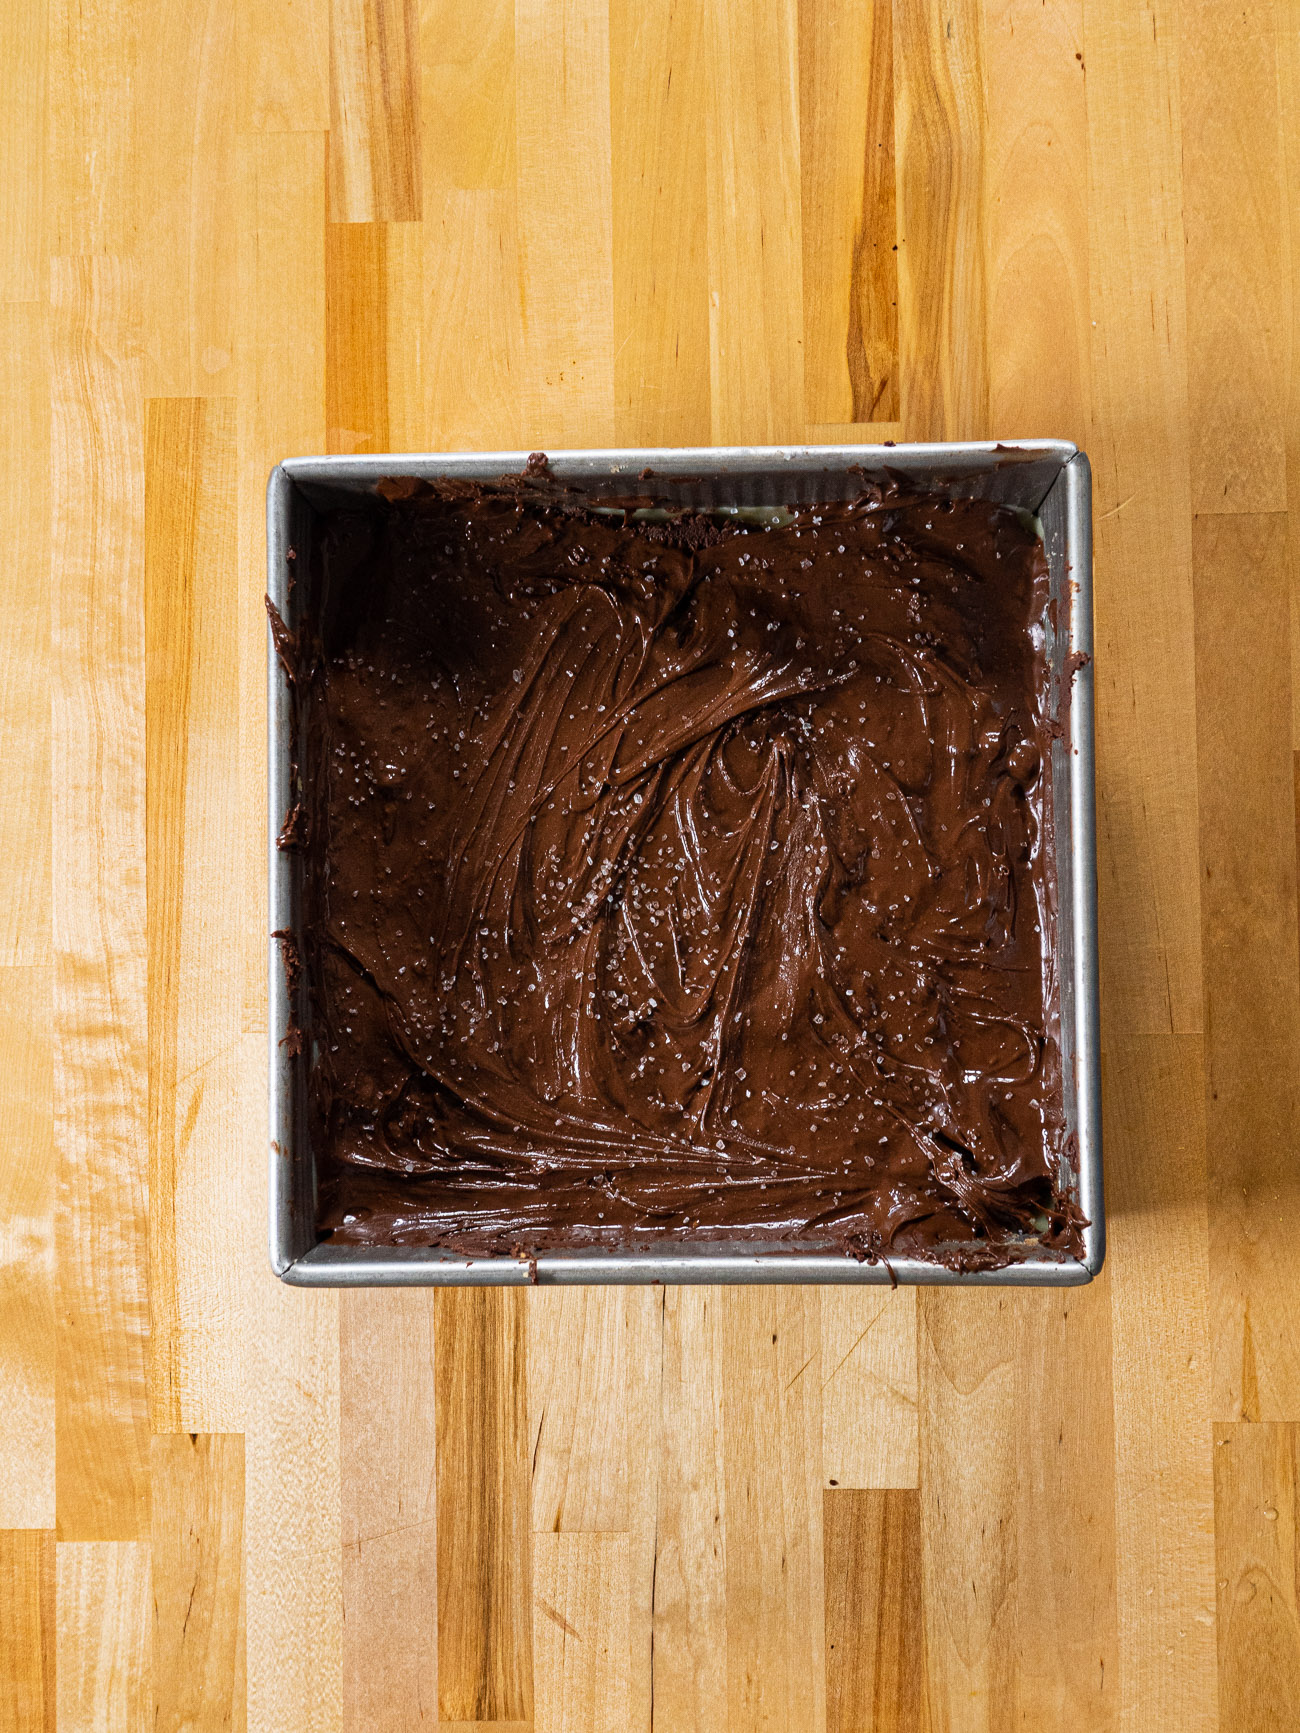 Melt the chocolate together with 1 tablespoon butter. Pour over the caramel layer. Sprinkle coarse sea salt over top and refrigerate until hardened. Cut into bars.